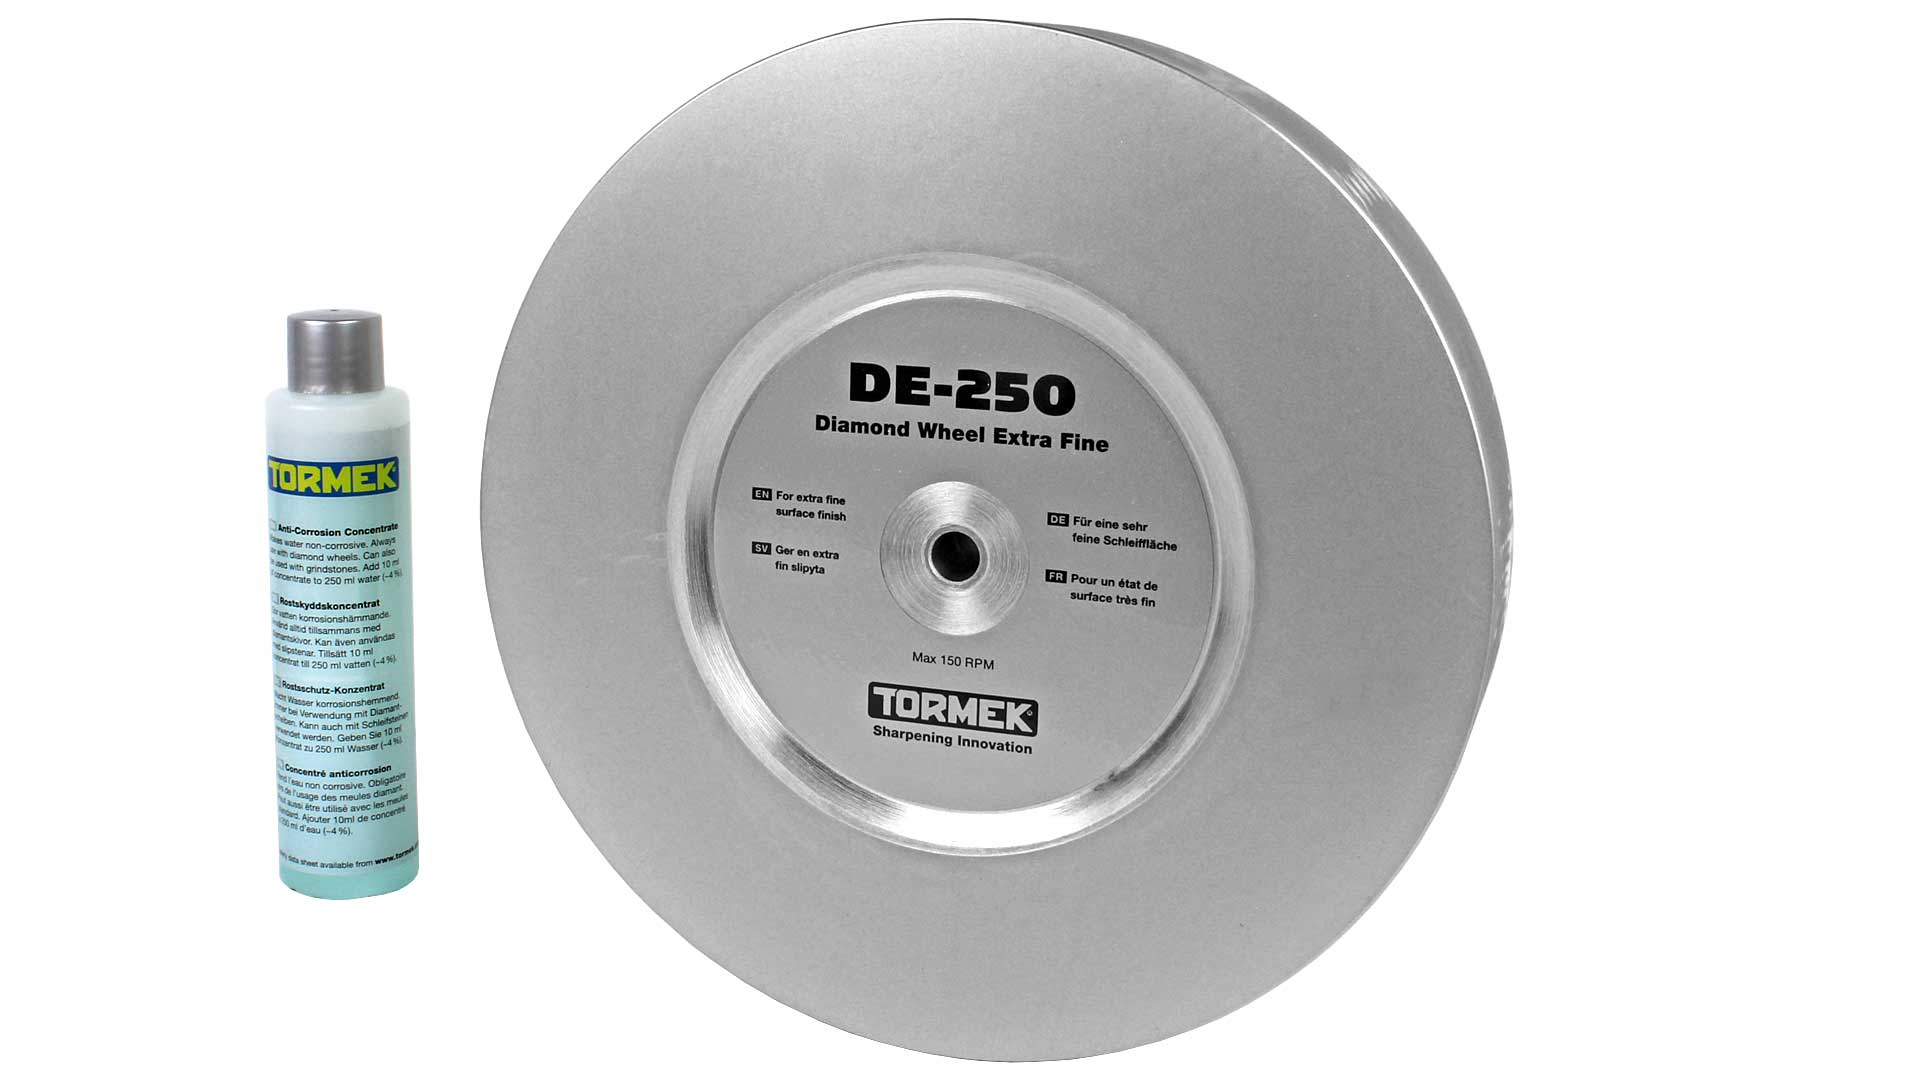 DC-250 Tormek 1200 grit grade diamond wheel for Tormek T8